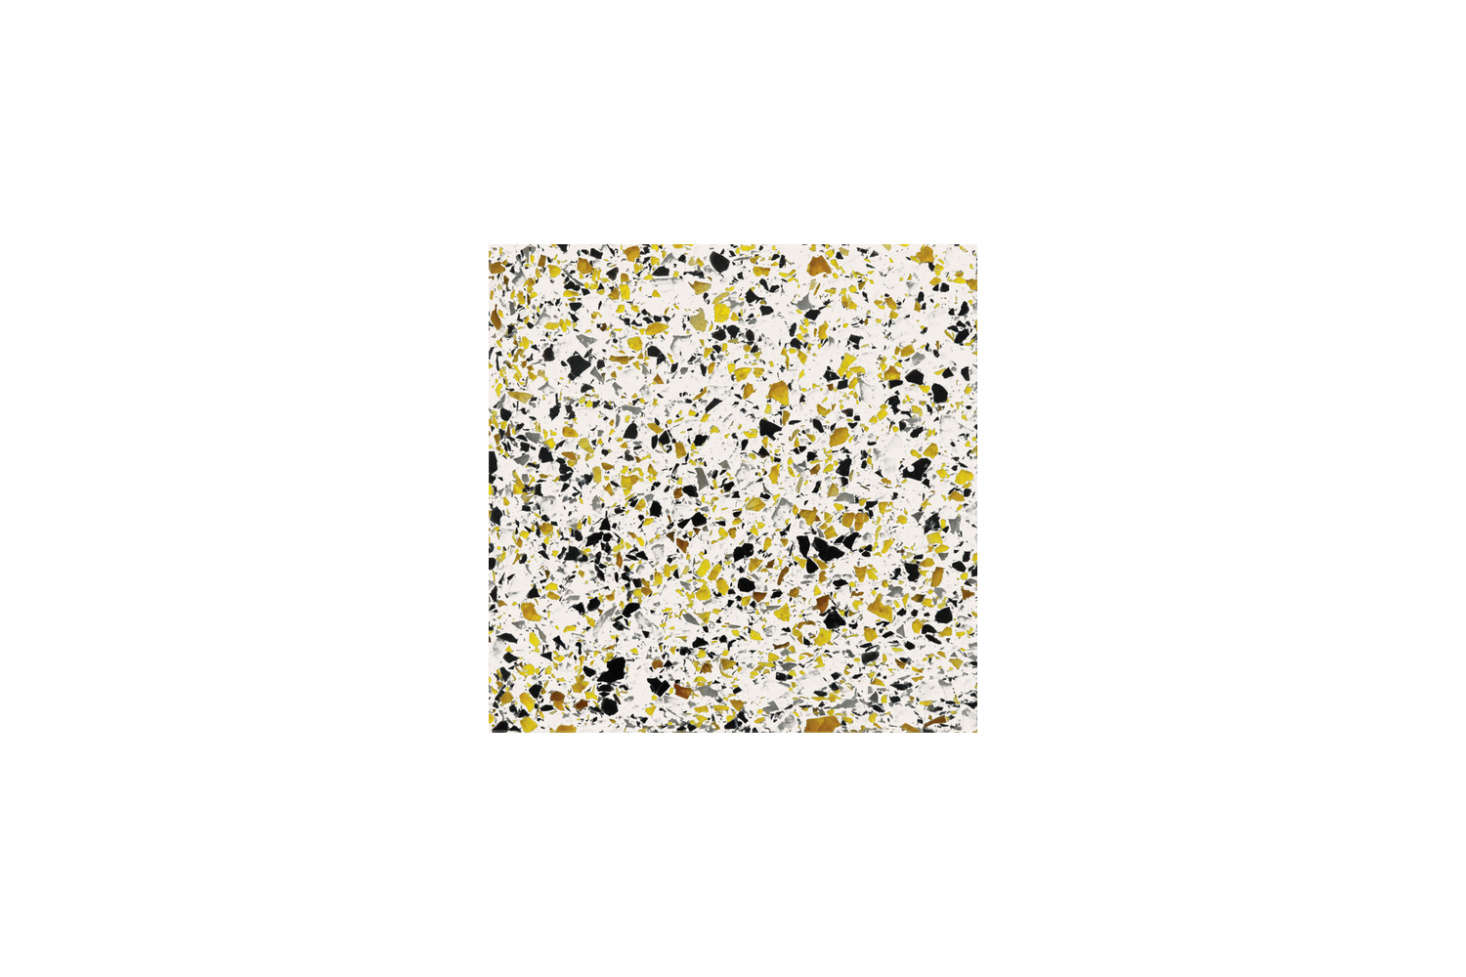 The countertop, backsplash, and integrated sink are all made with terrazzo cast with recycled glass with colors individually selected by Yun and August. For something similar, Wausau Tile's Terrazzo Recycled Glass Tile Riois available at Daltile. You can also source the style from Vetrazzo.